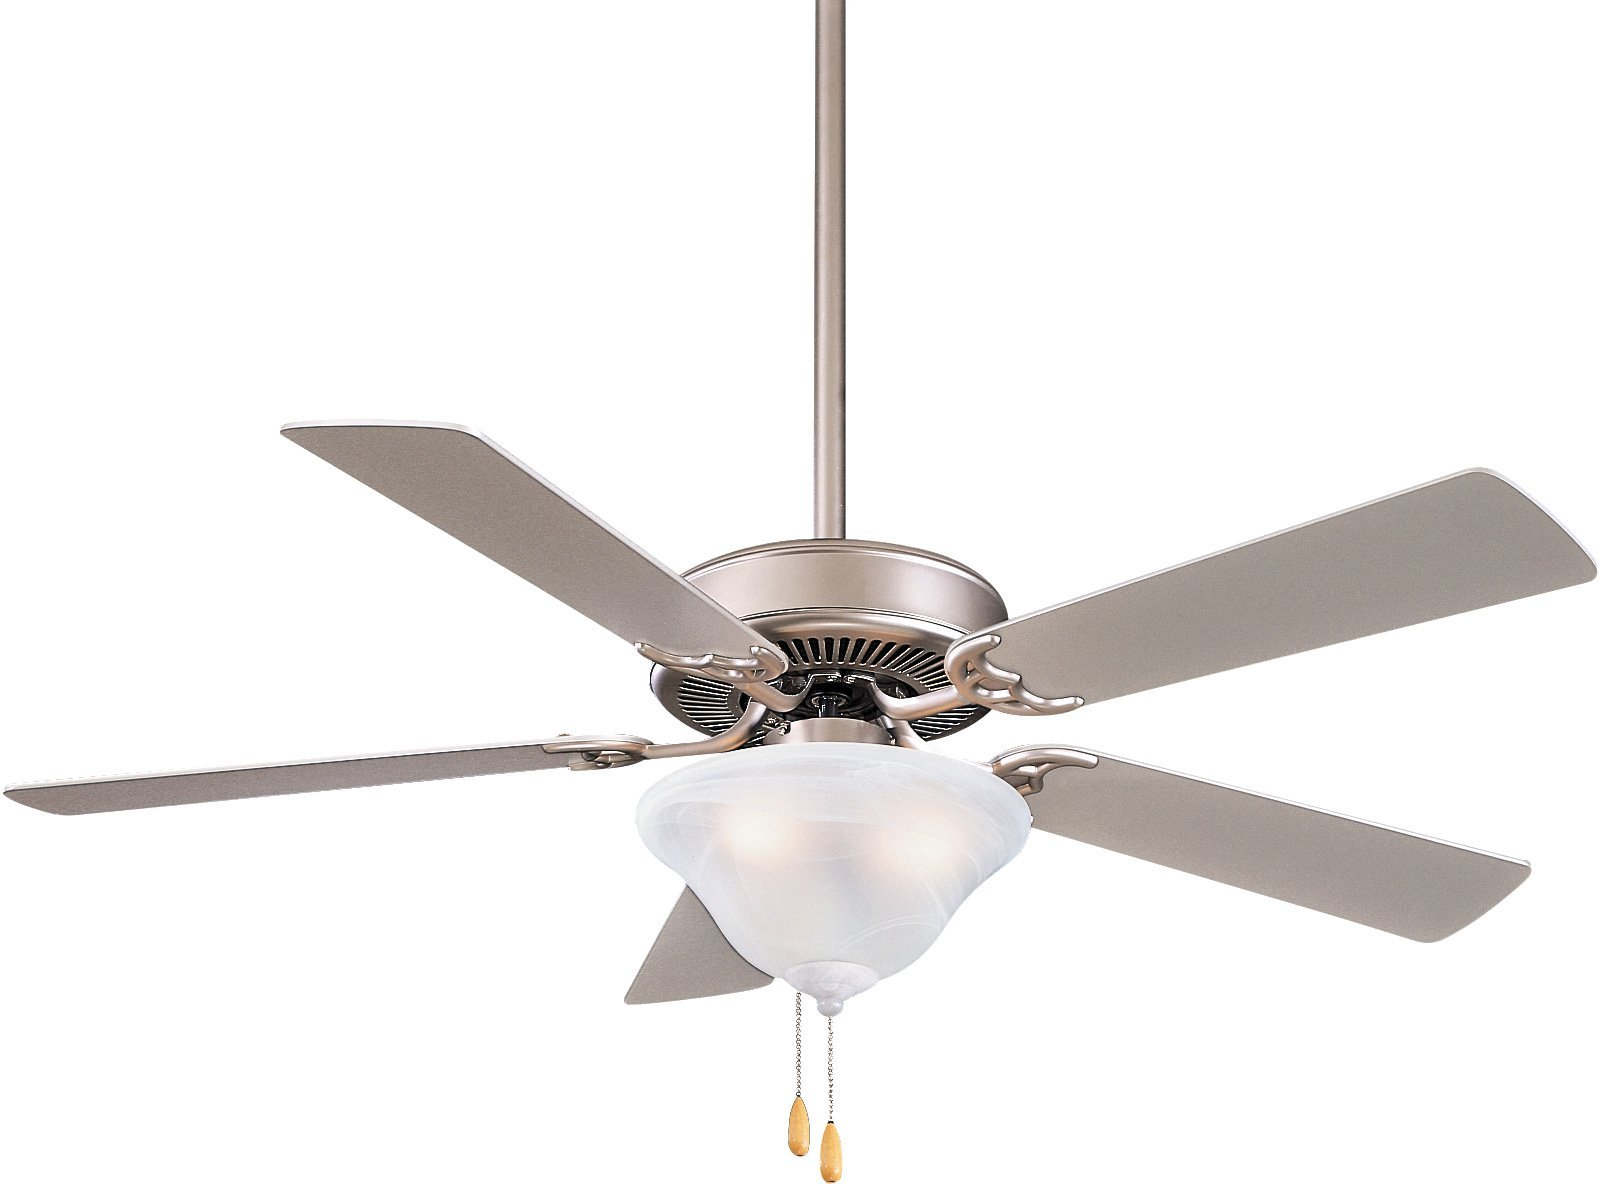 Minka-Aire F548-BS, Contractor Uni-Pack, 52'' Ceiling Fan, Brushed Steel